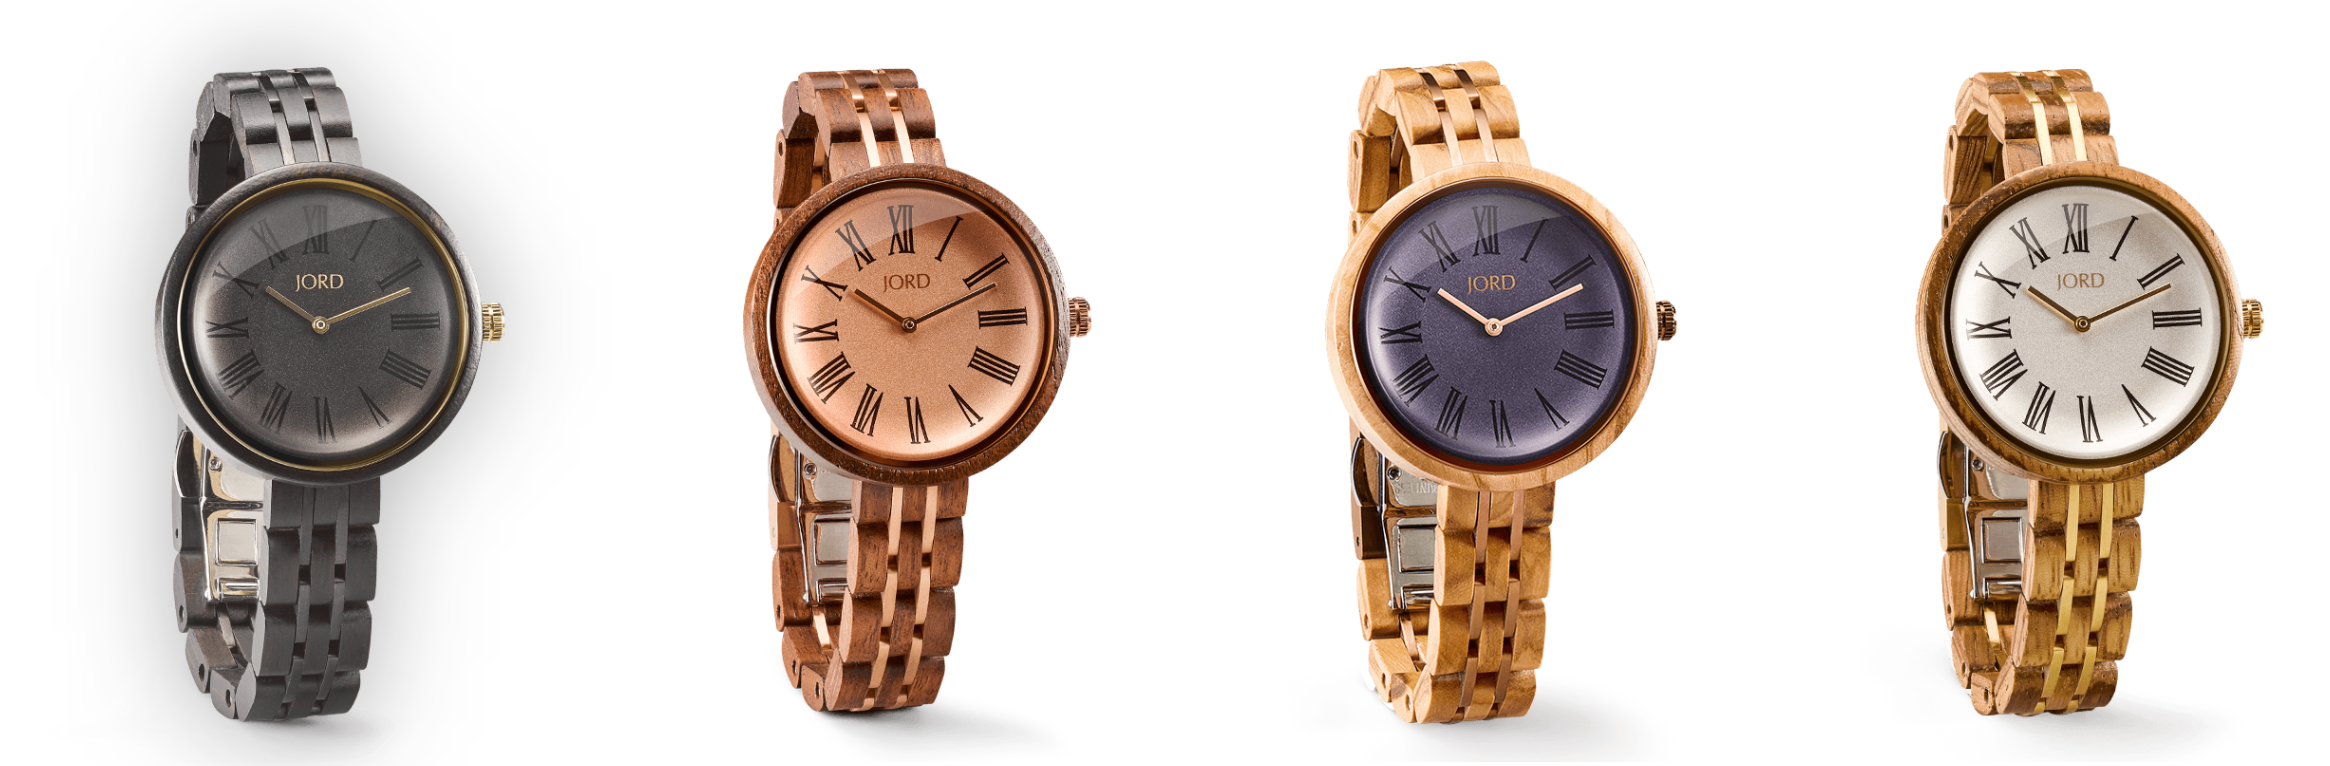 Cassia Series Jord Wood Watches